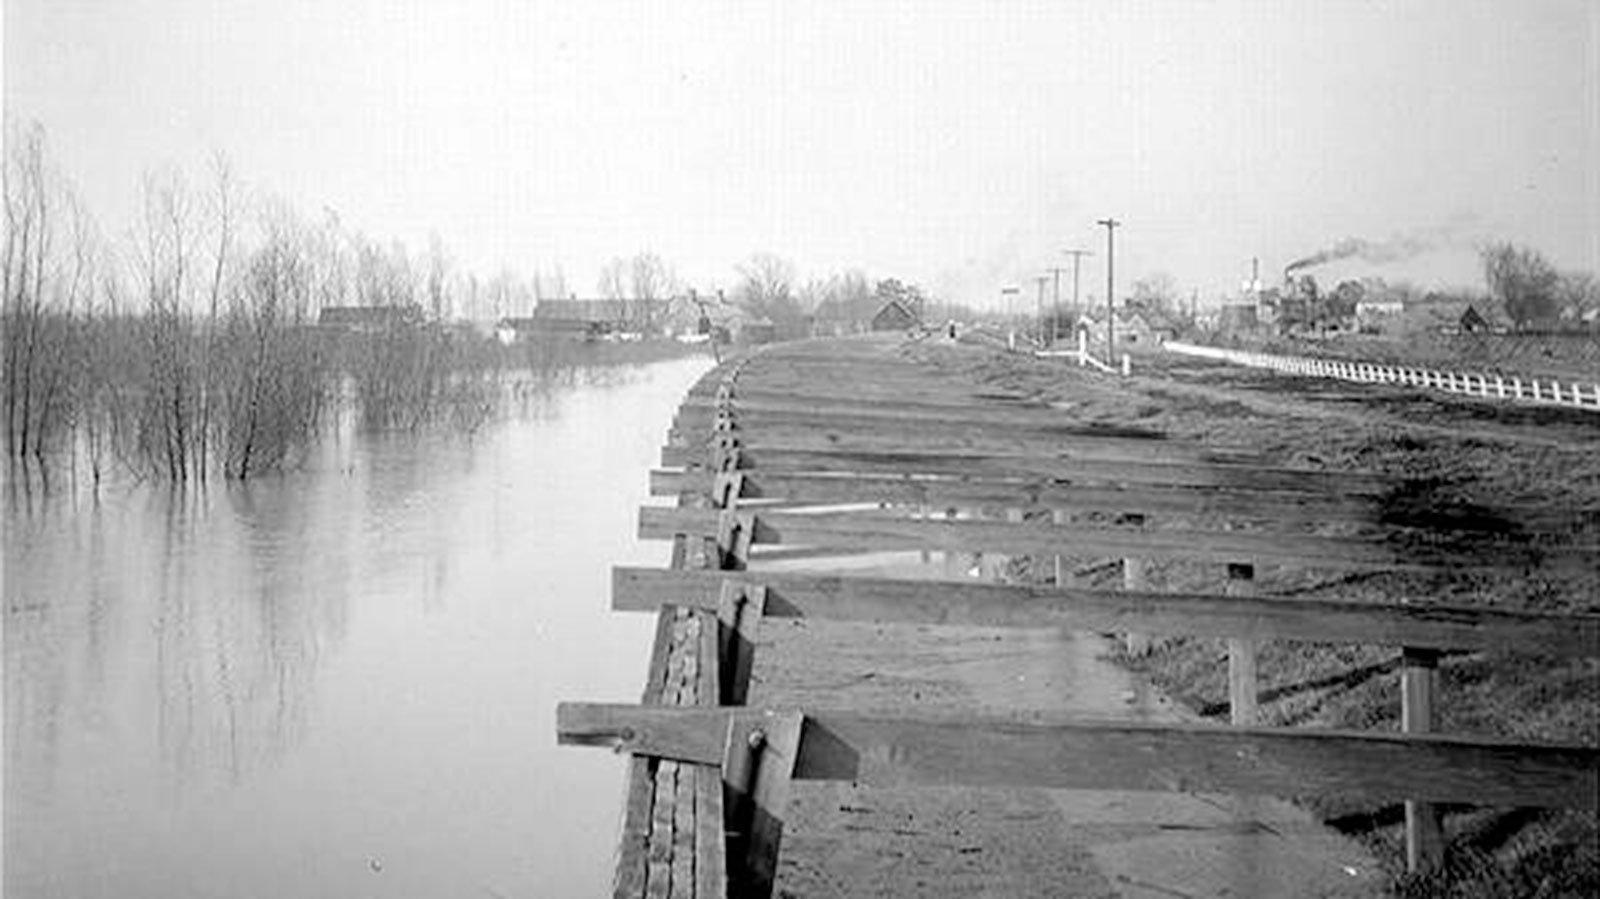 A high river and board revetment at Carrollton Bend in New Orleans, Louisiana, circa 1900